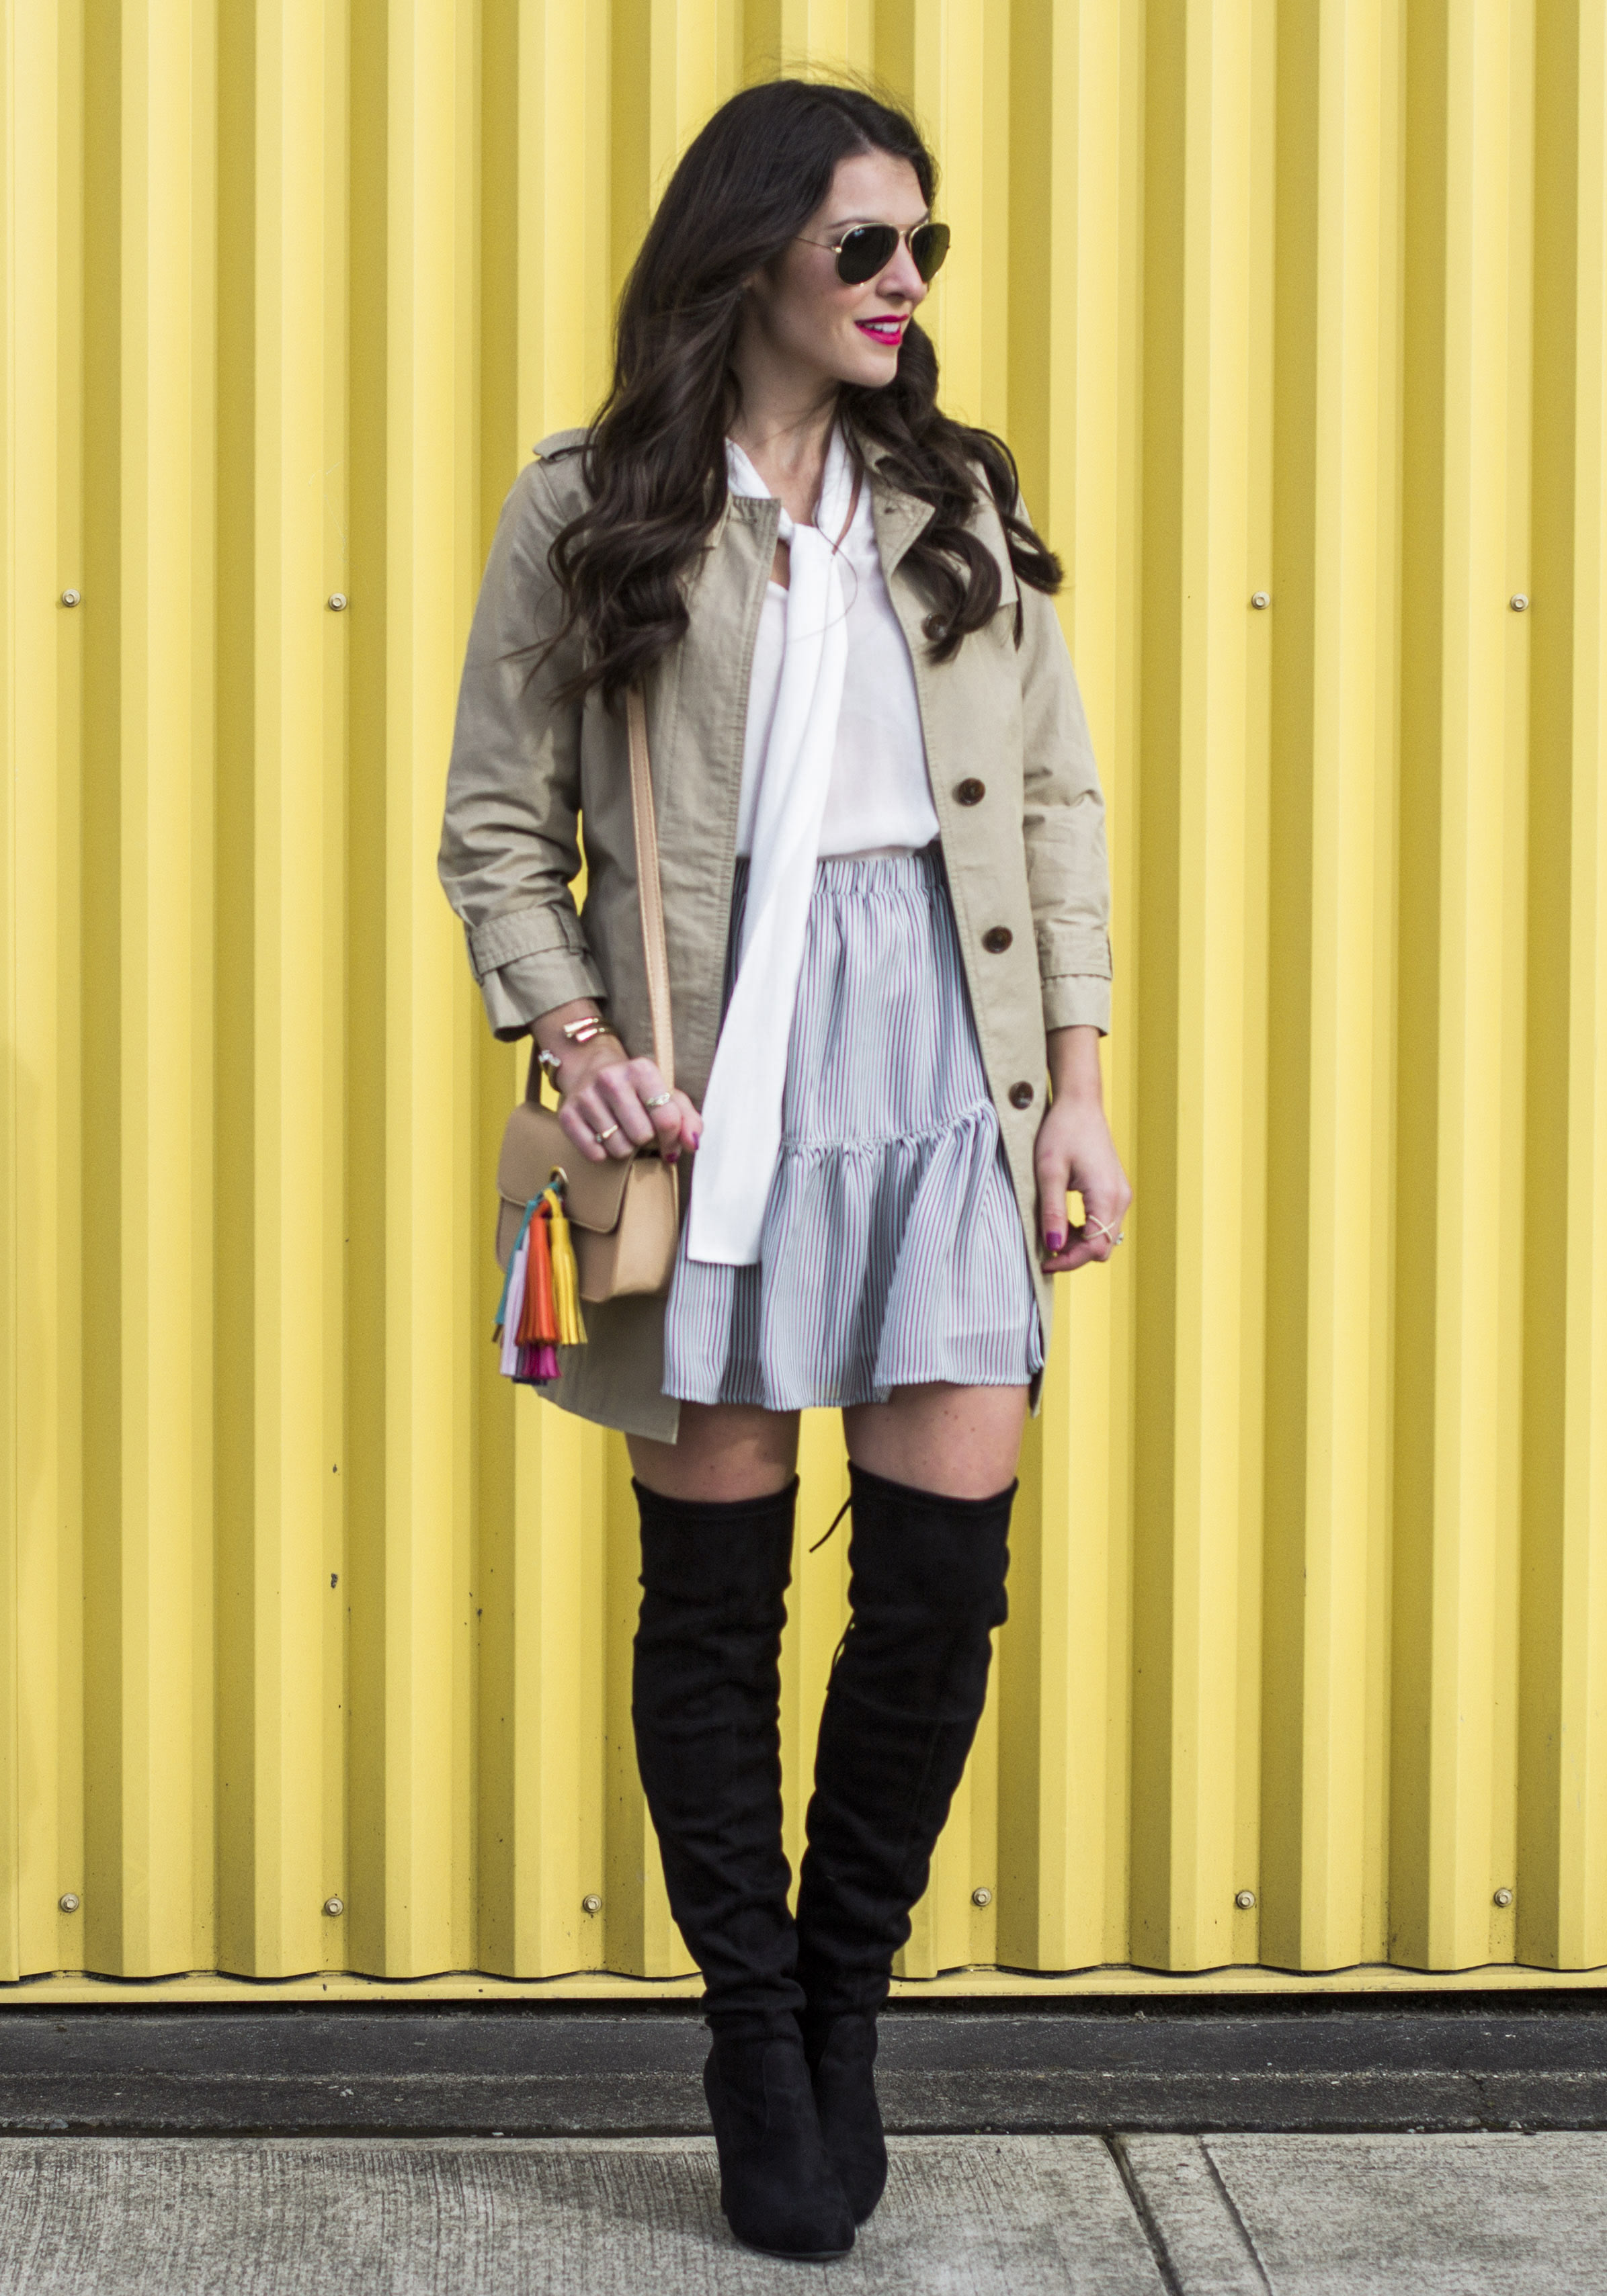 Cute fall outfits with otk boots, over the knee boot outfit ideas, Ruffle hem skirt with bow blouse, trench coat, and Steve Madden Gorgeous over the knee boots.